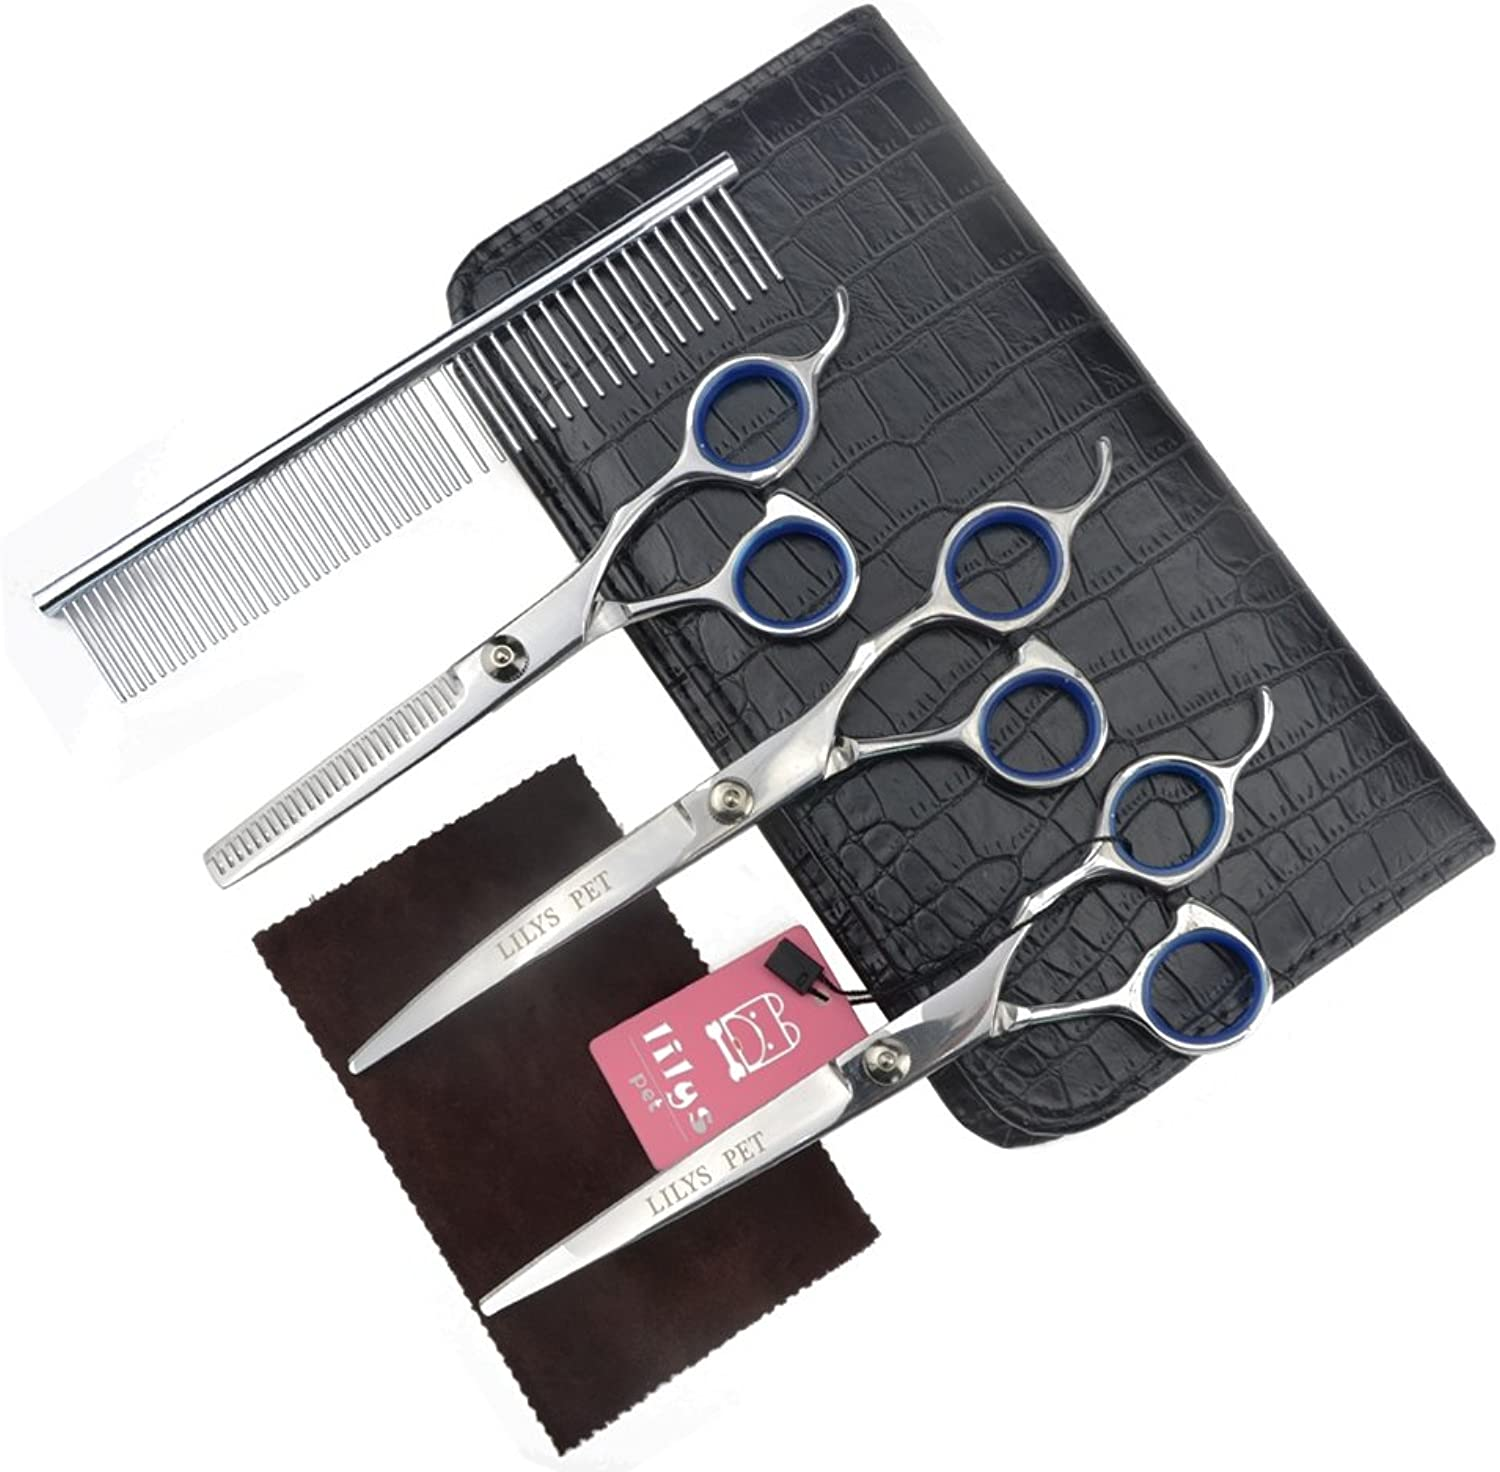 LILYS PET PINK blueE Ring Professional PET DOG Grooming scissors suit,3 Pieces of Scissors with a Comb and a Case,Sharp and Strong Stainless Steel Blade for Dogs Cats Hair Cutting (7.5, bluee Ring)